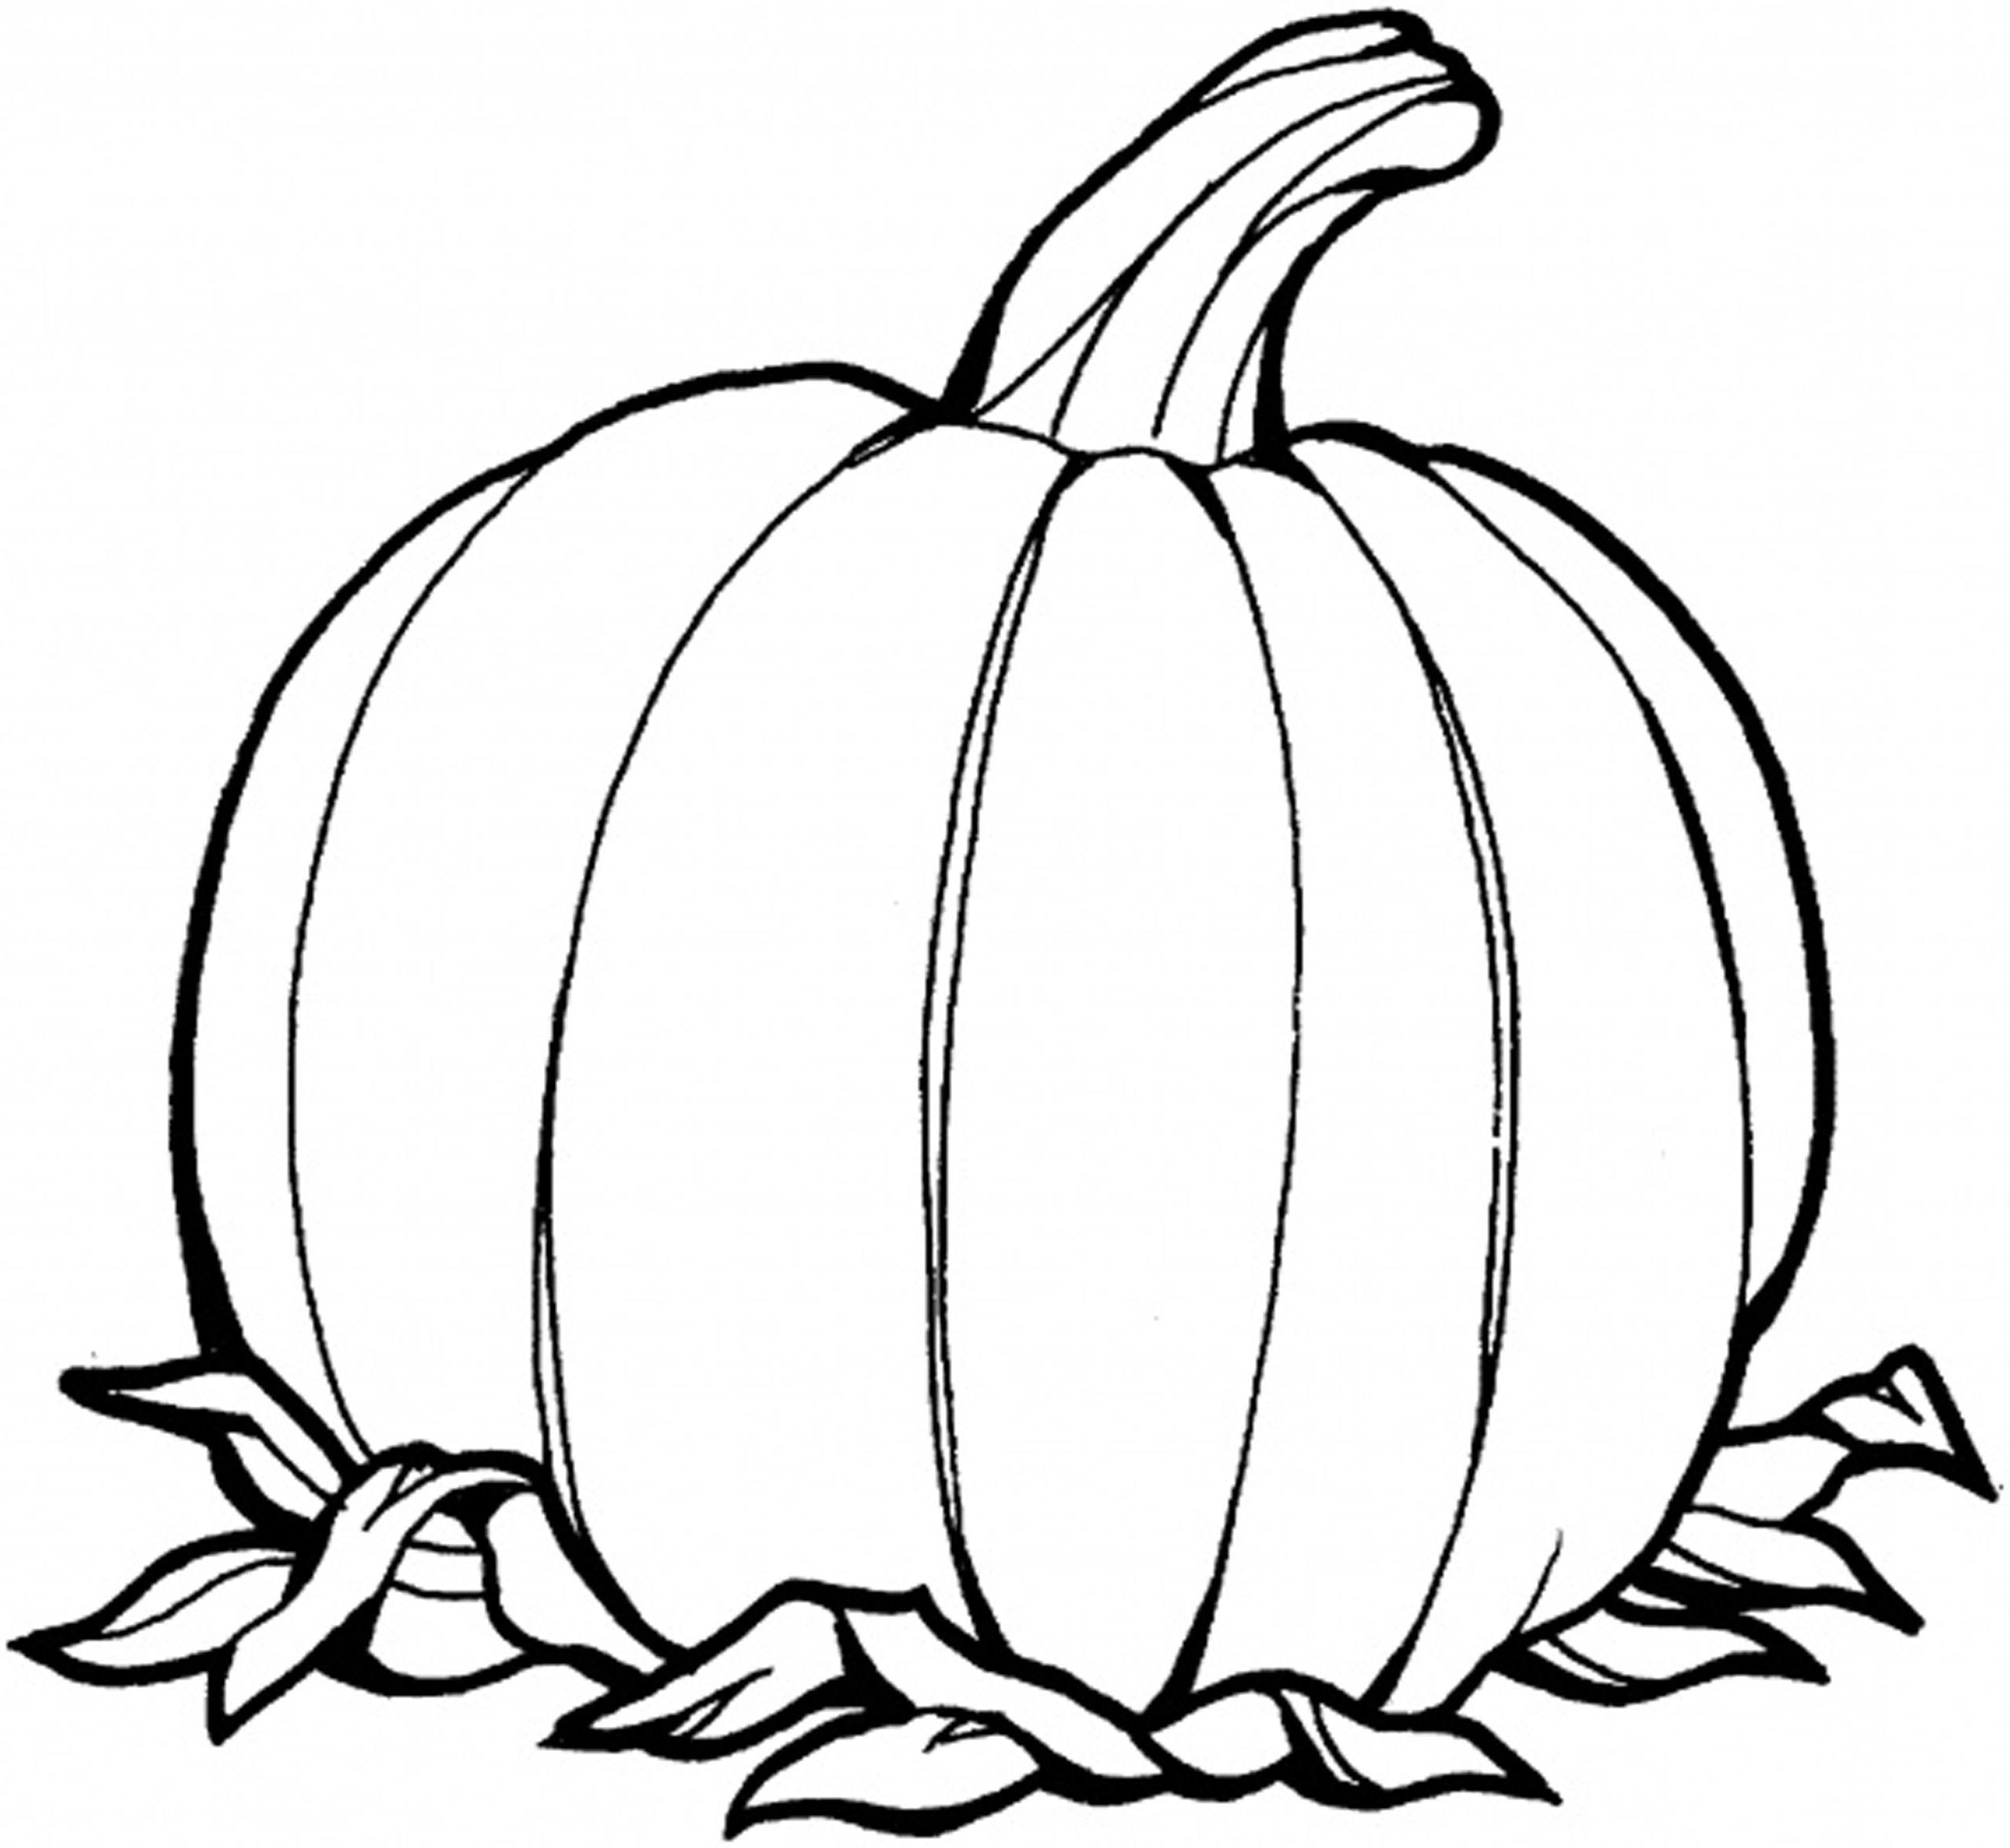 coloring pages of a pumpkin free printable pumpkin coloring pages for kids cool2bkids of pumpkin a pages coloring